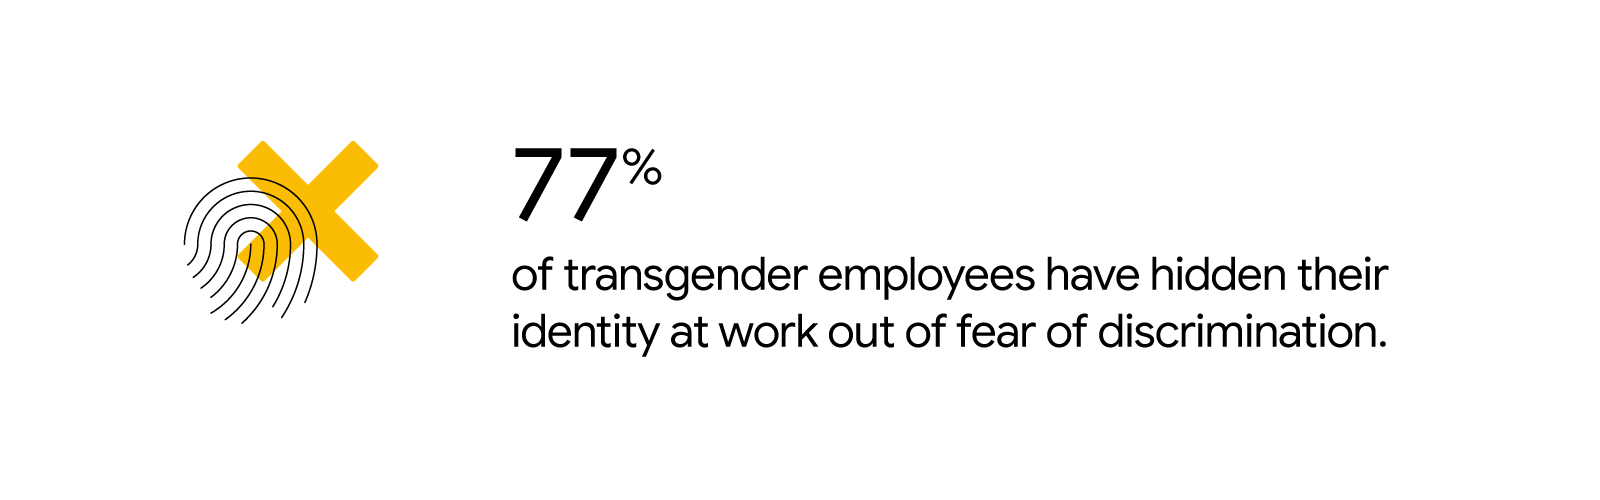 Crossed out thumbprint iconography represents the statistic that 77% of transgender employees have hidden their identity at work out of fear of discrimination.